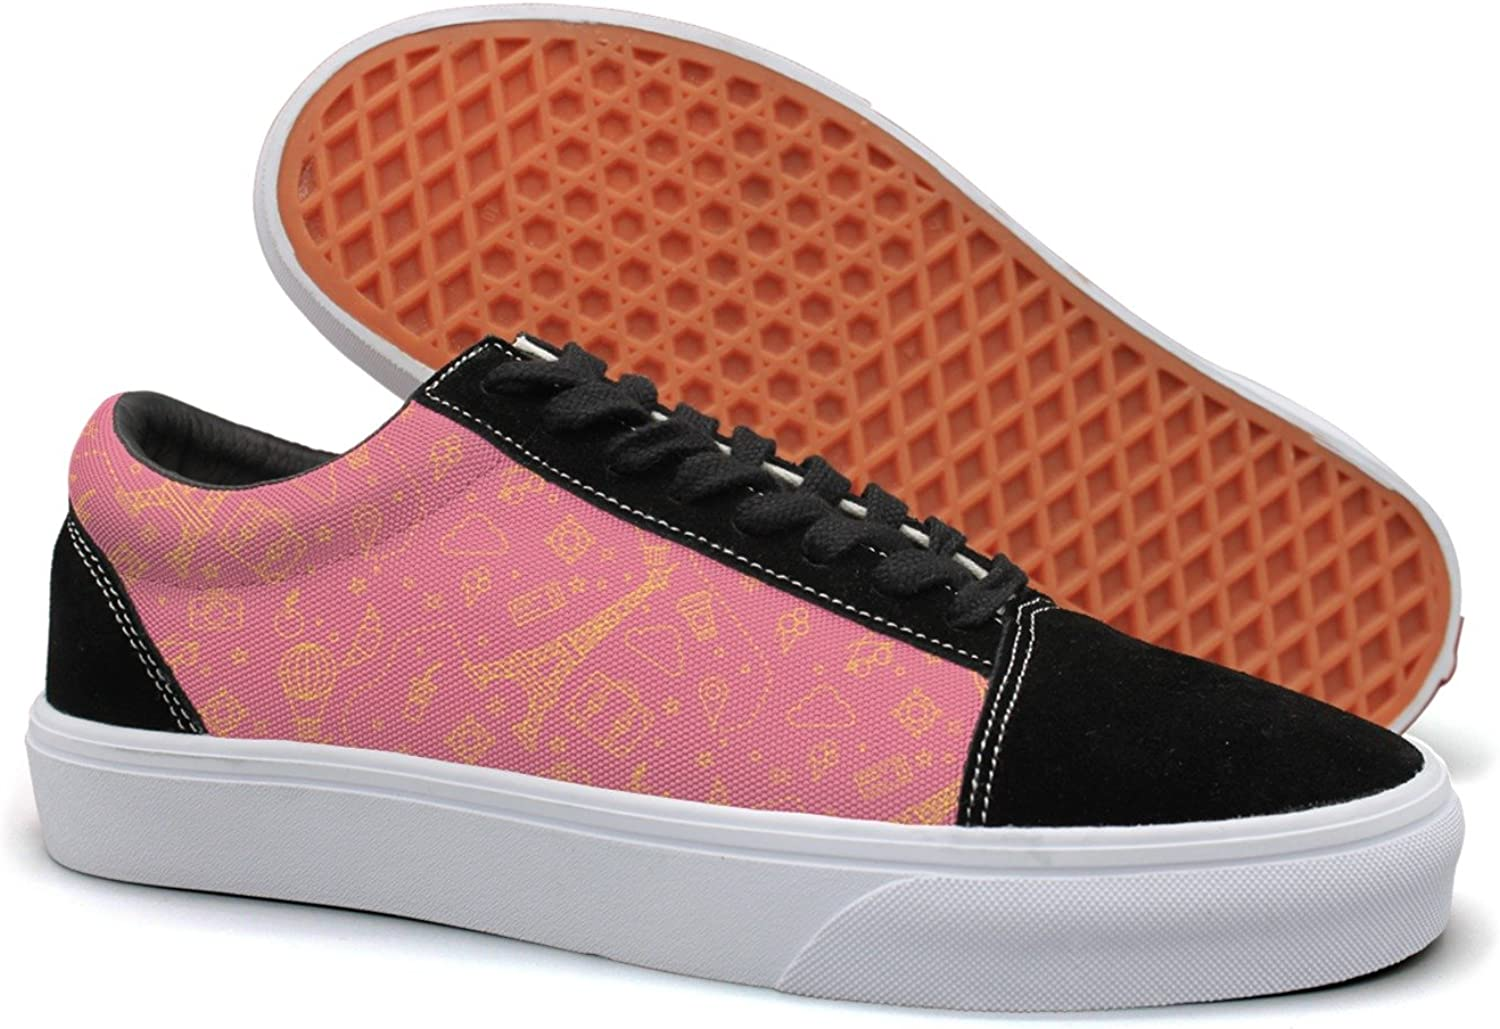 Hjkggd fgfds Casual How Tall is The Eiffel Tower Women's Canvas shoes